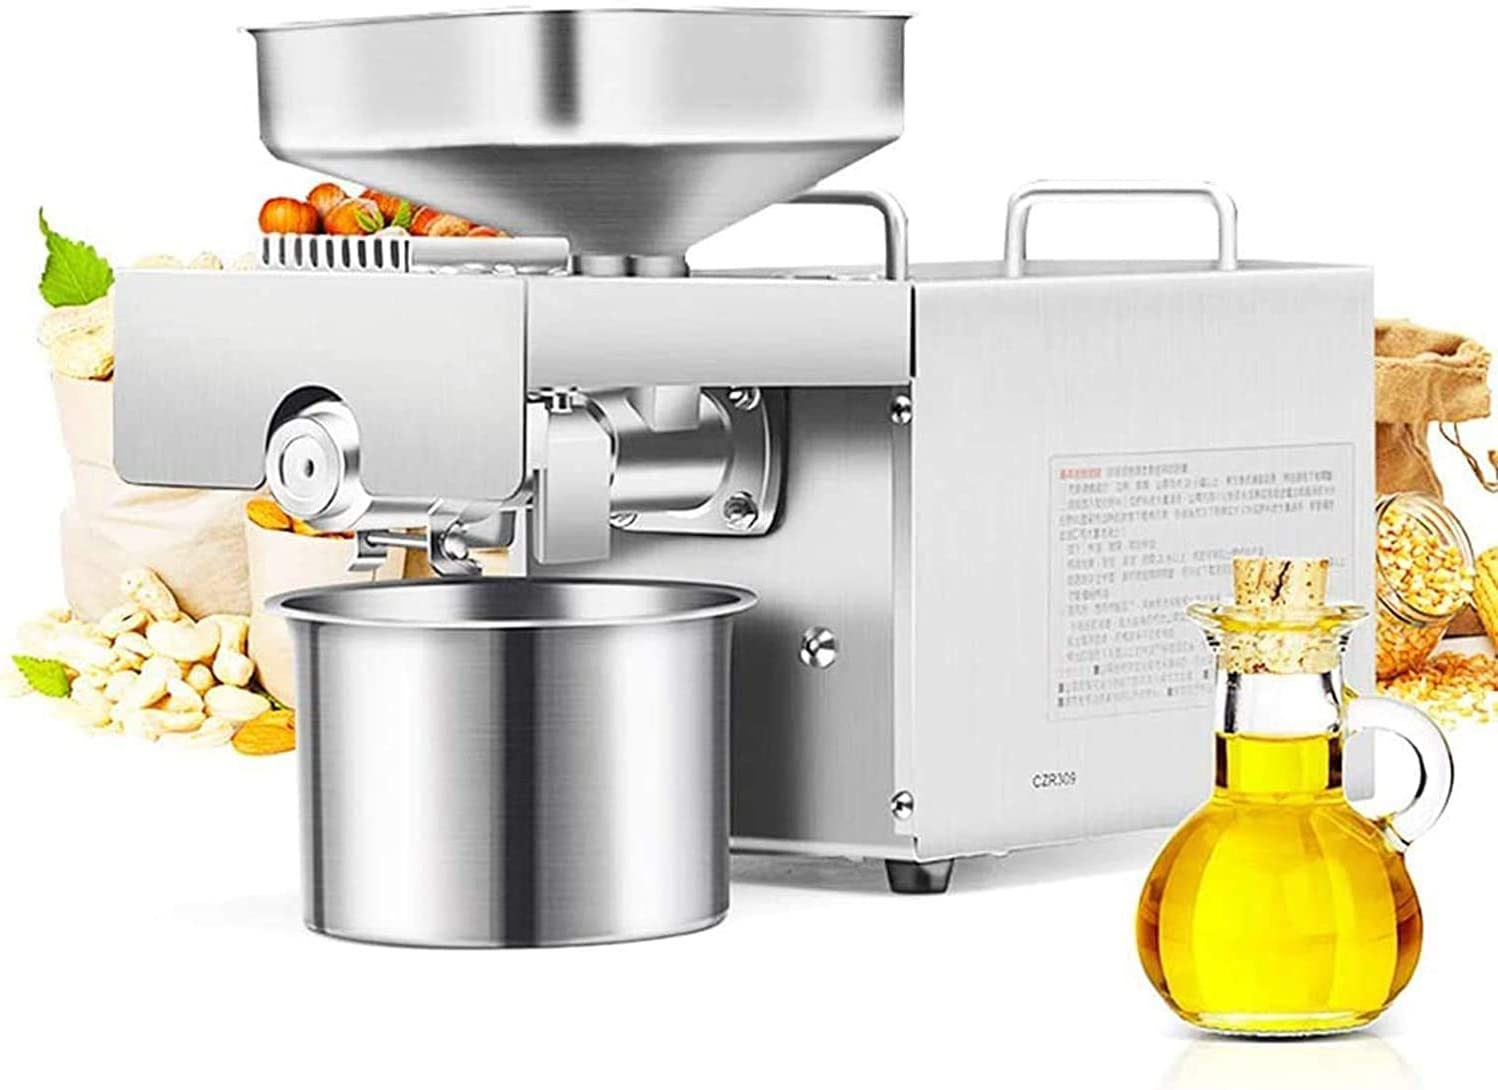 CGOLDENWALL 1500W Commercial Automatic Oil Press Tampa Mall New Shipping Free Shipping Machine Industr